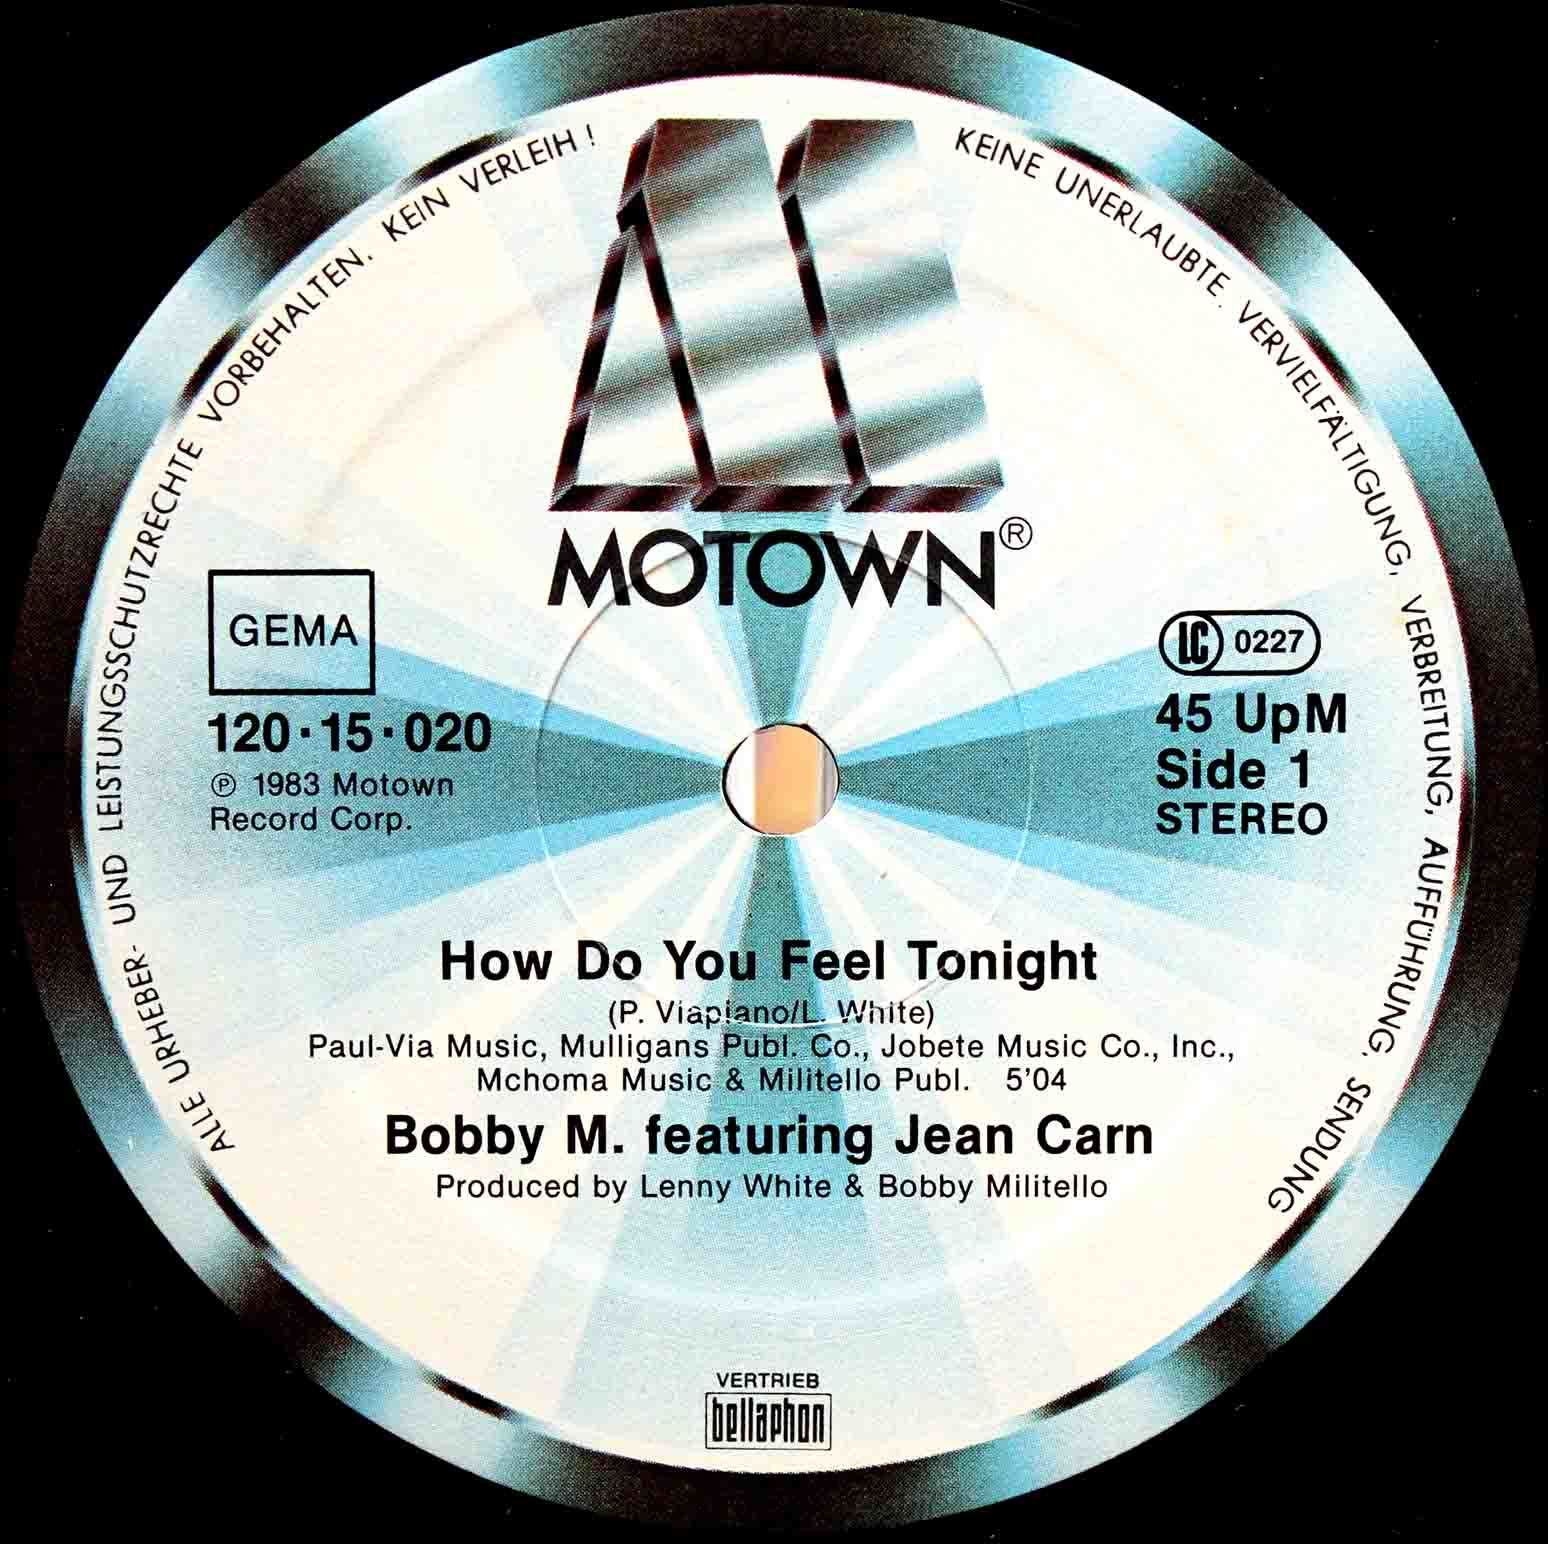 Bobby M Featuring Jean Carn – How Do You Feel Tonight 03